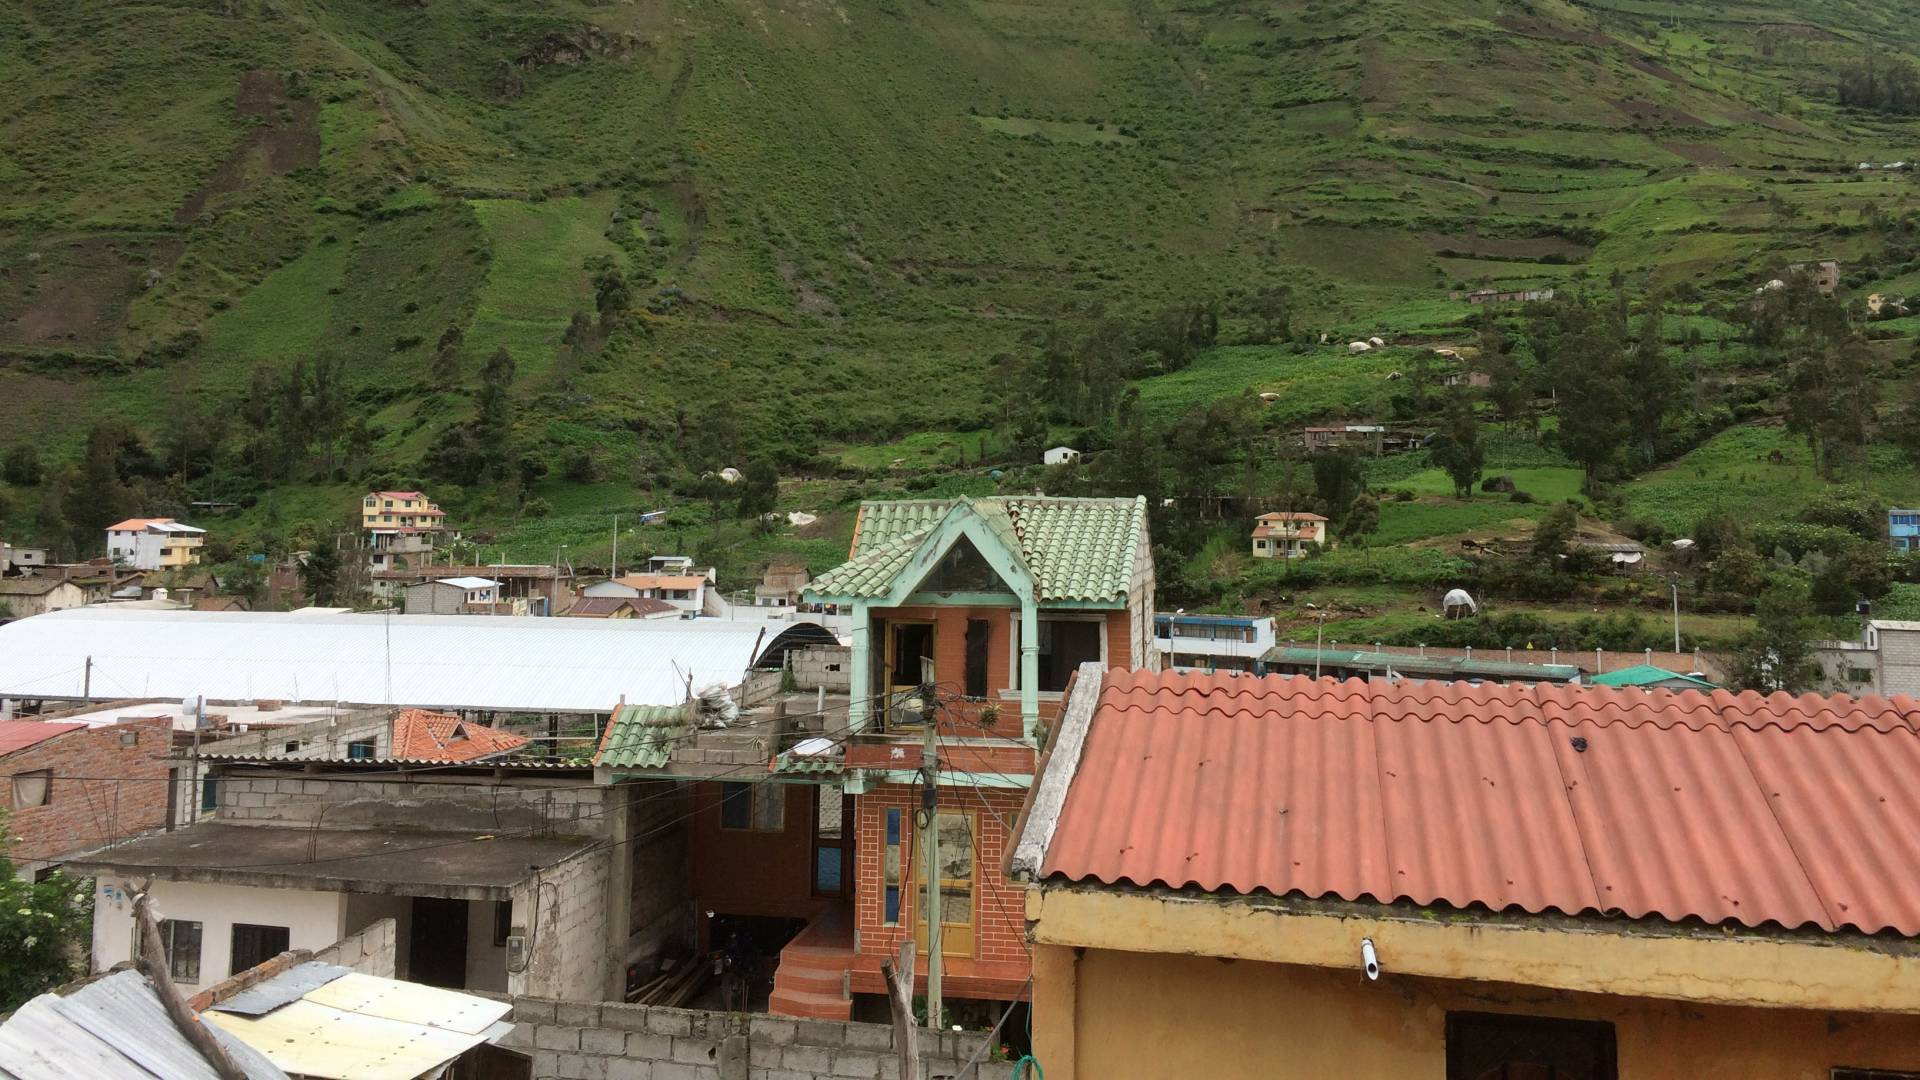 Rooftops and mountain in background in Ecuador